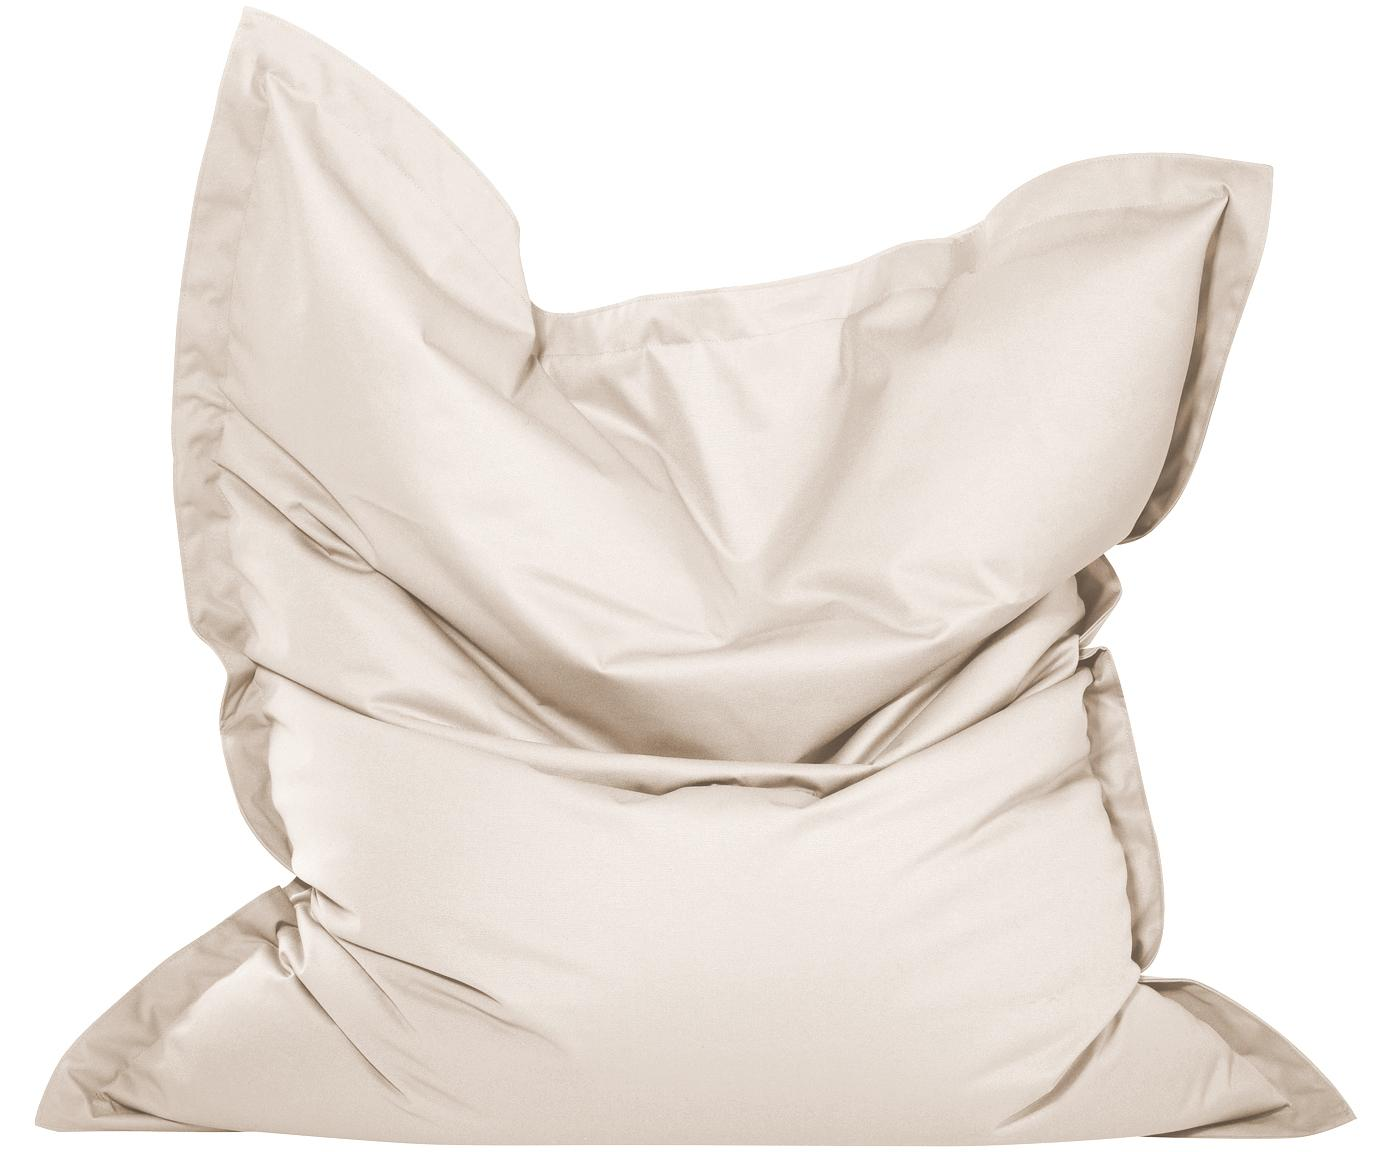 Outdoor-Sitzsack Meadow, Bezug: 75% Baumwolle, 25% Polyes, Creme, 130 x 160 cm